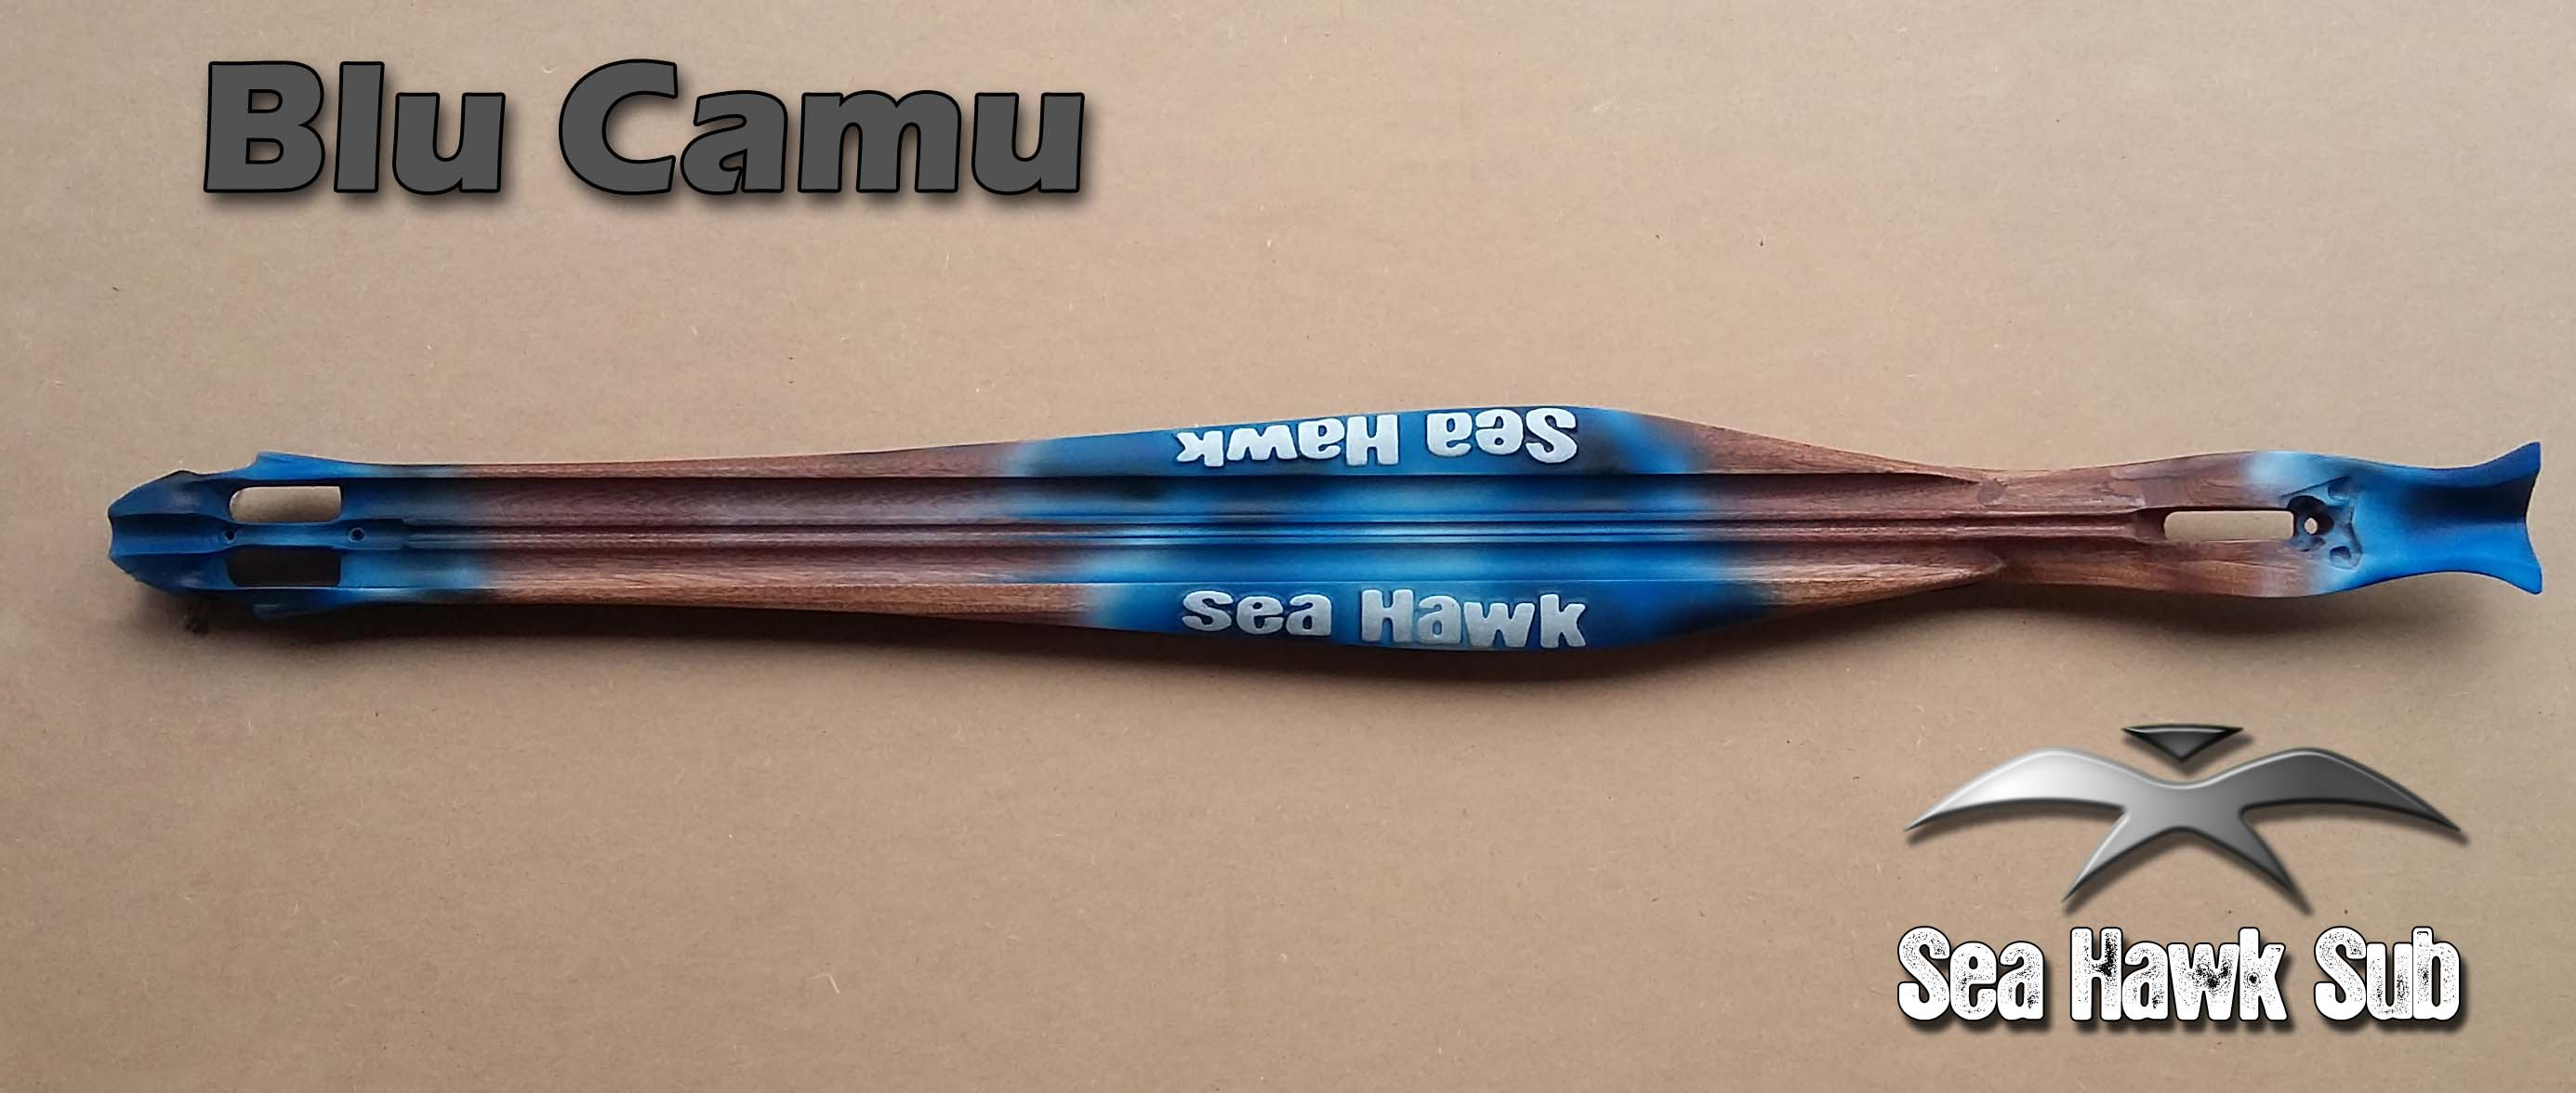 0 blu camu seahawksub Spearfishing pescasub rollergun speargun 0001